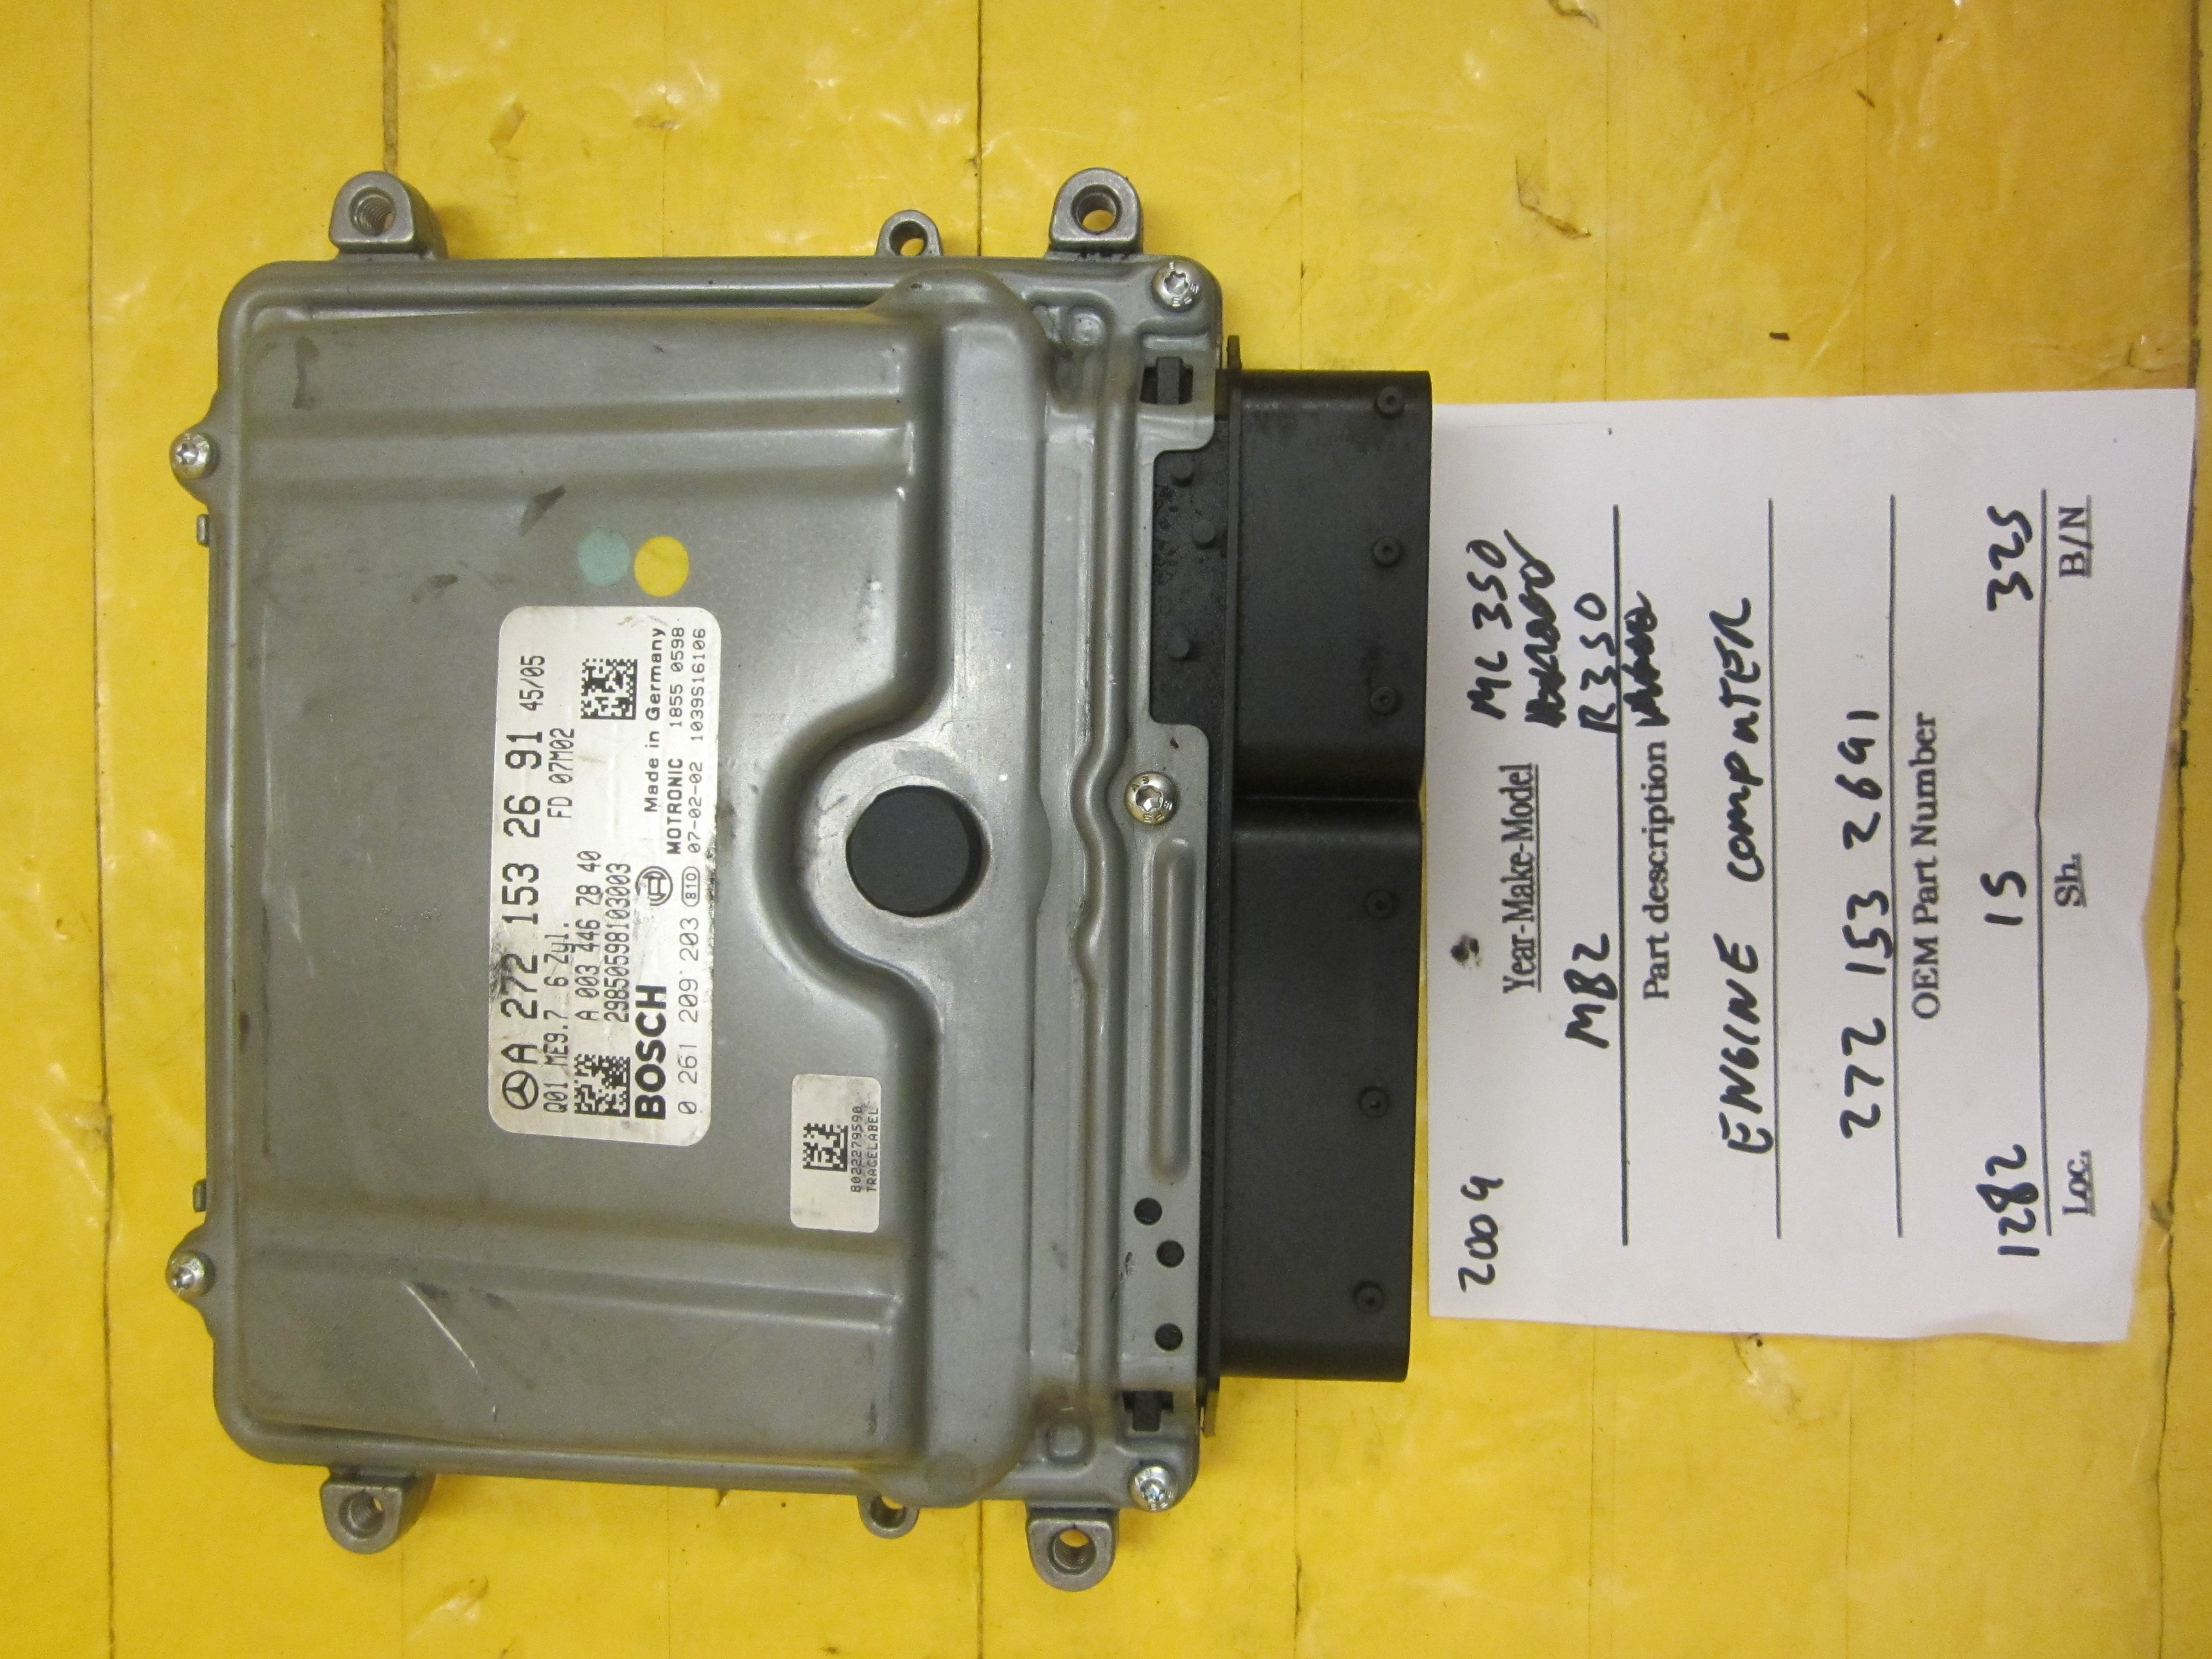 THIS UNIT NUMBER CHANGE THE PART NUMBER WITH 2721535191